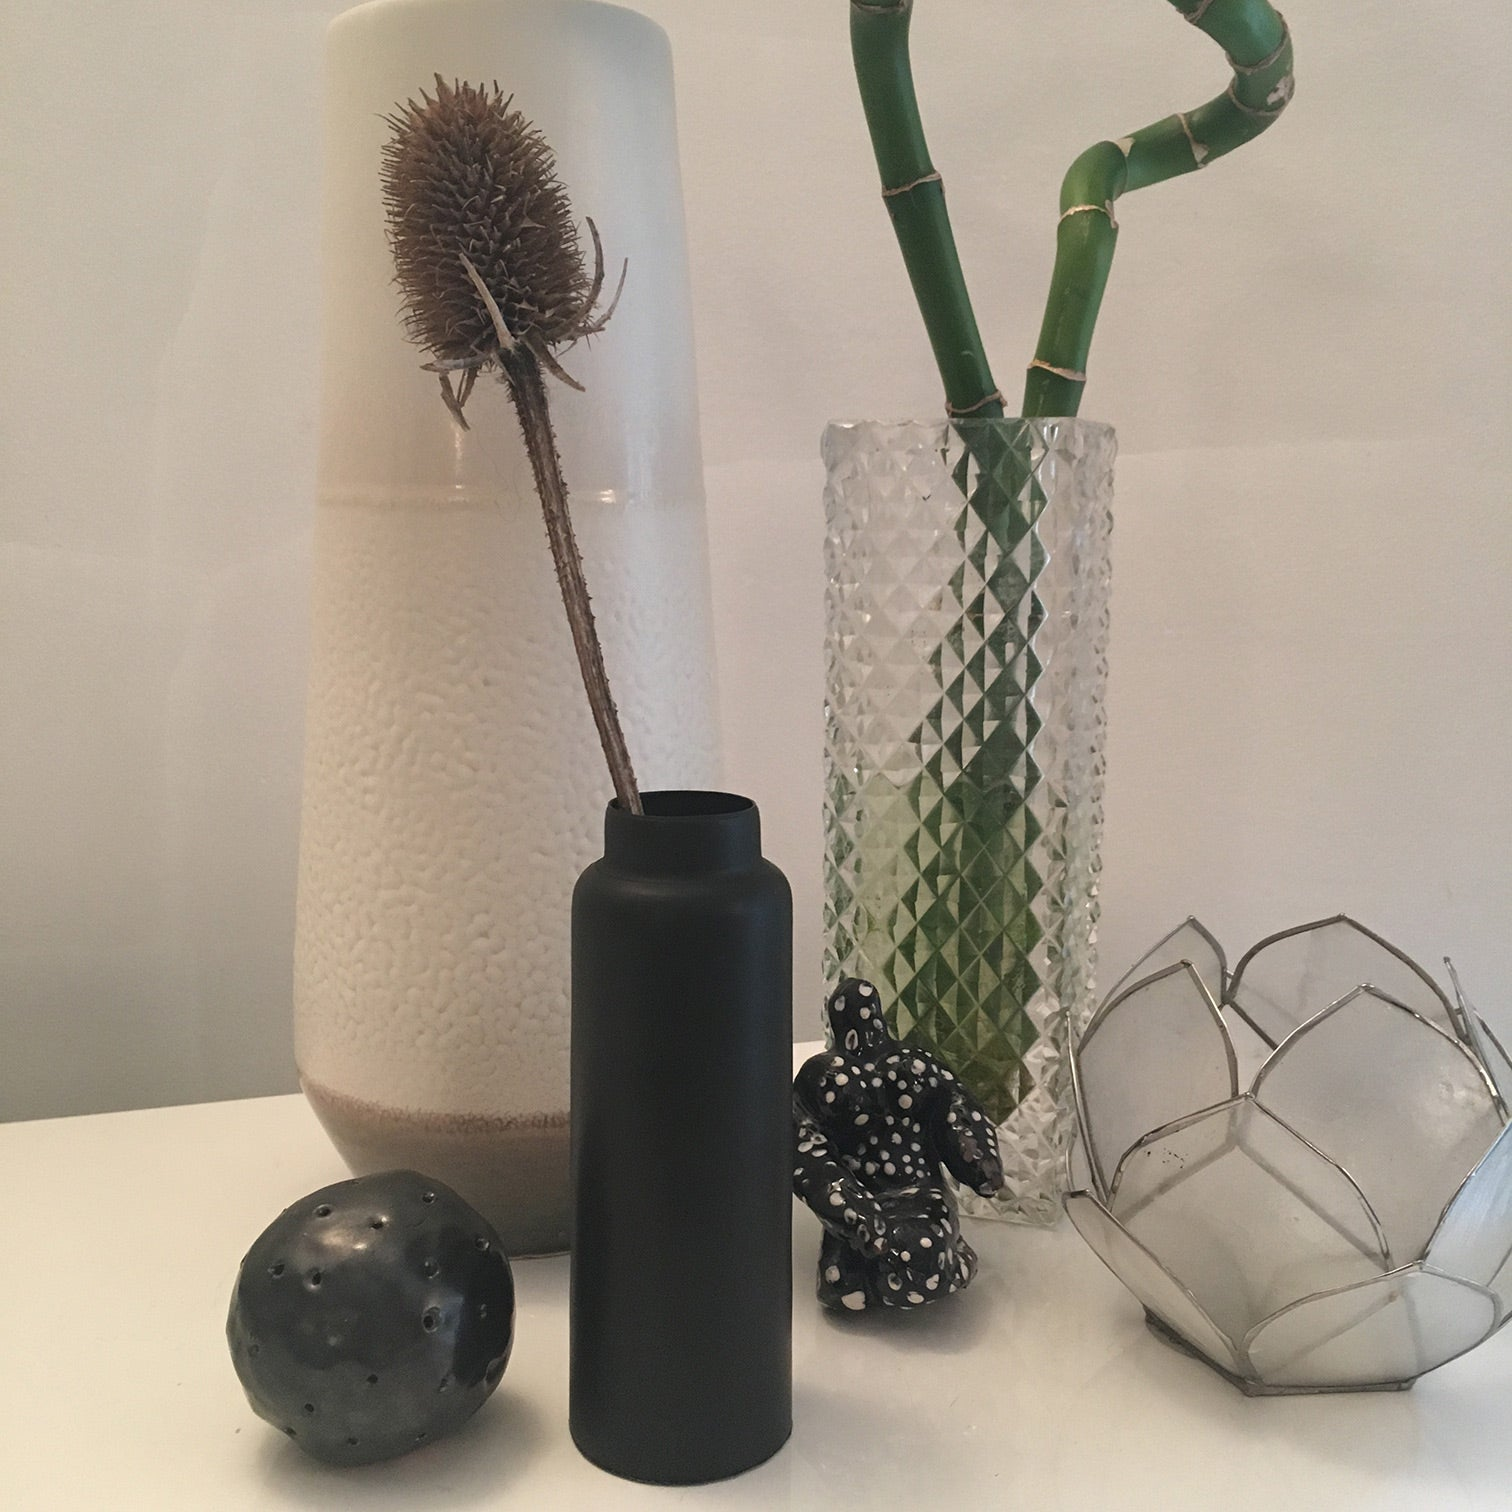 Collection of vases, glass and ceramic